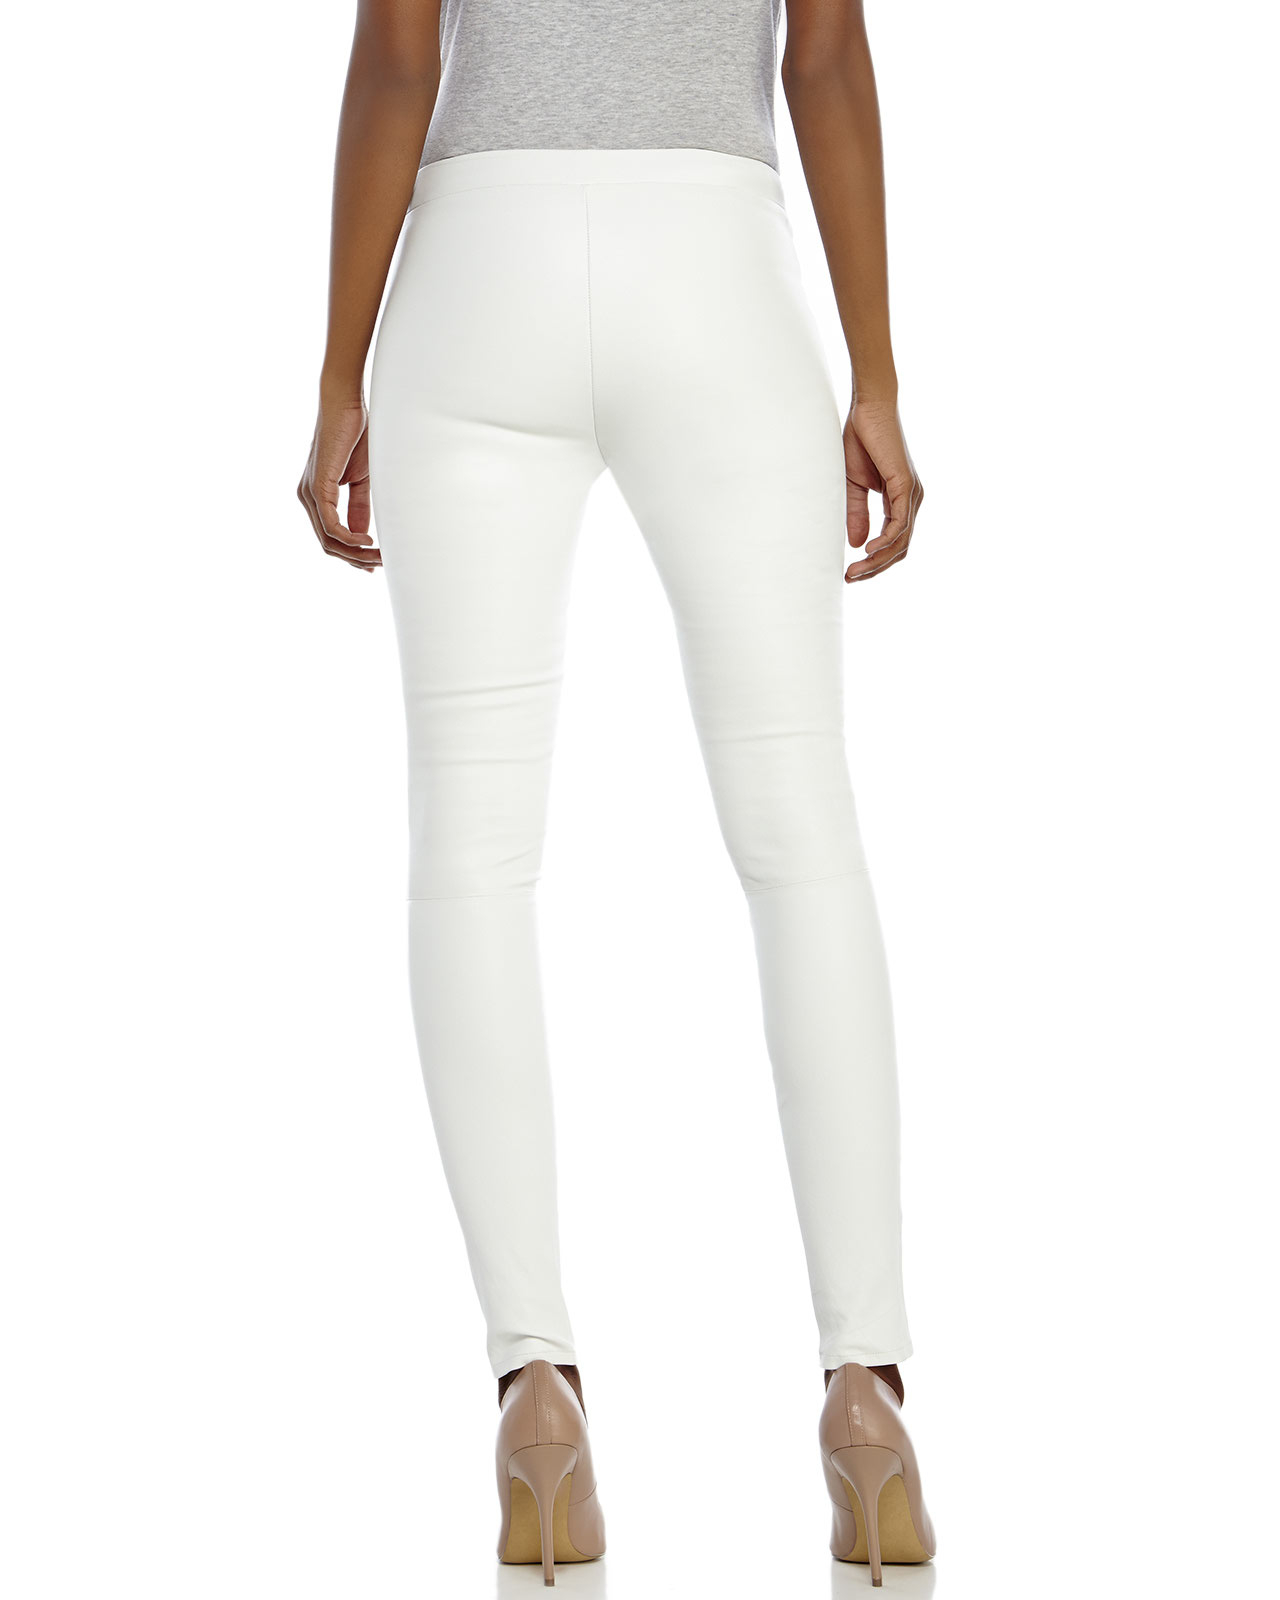 Cool White Leather Pants For Women From China White Leather Pants For Women